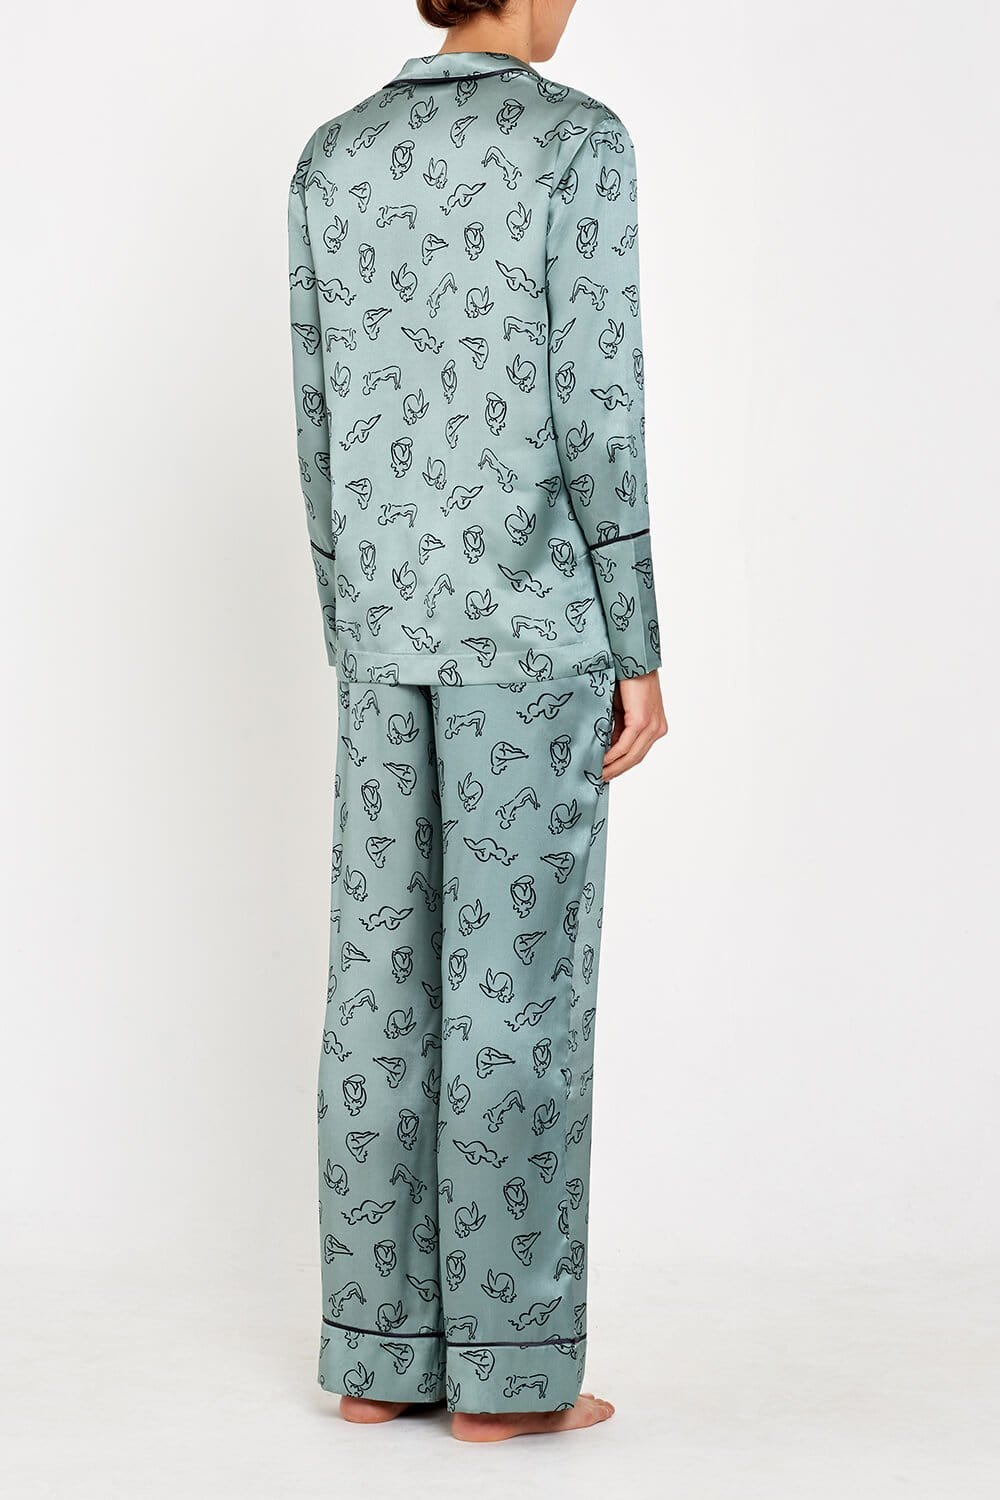 Evie PJs Green Print Full back